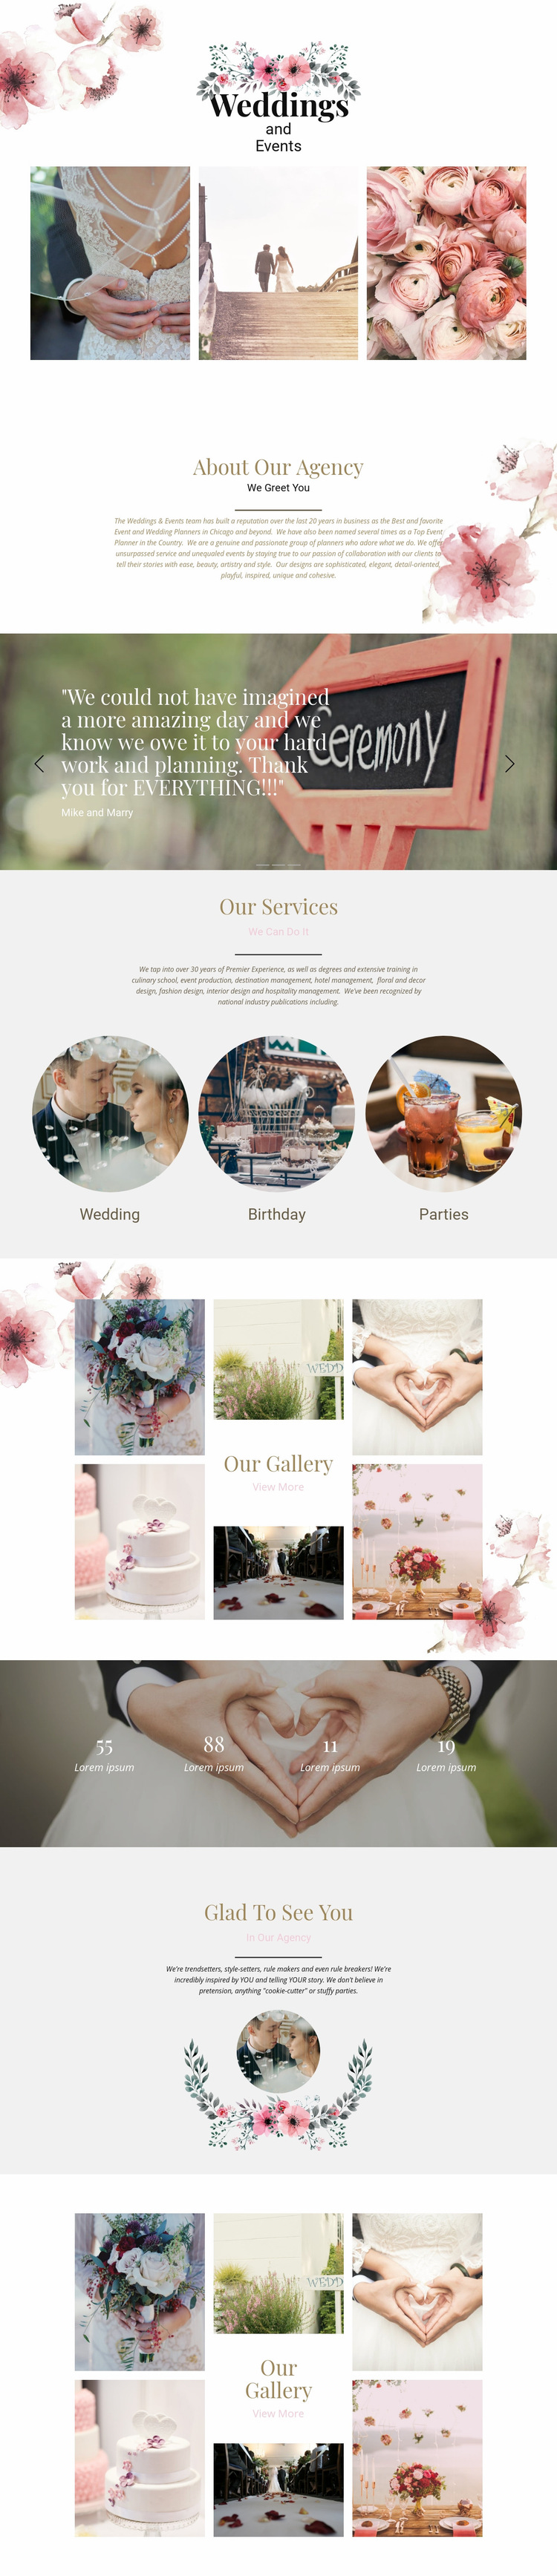 Moments of wedding Web Page Design